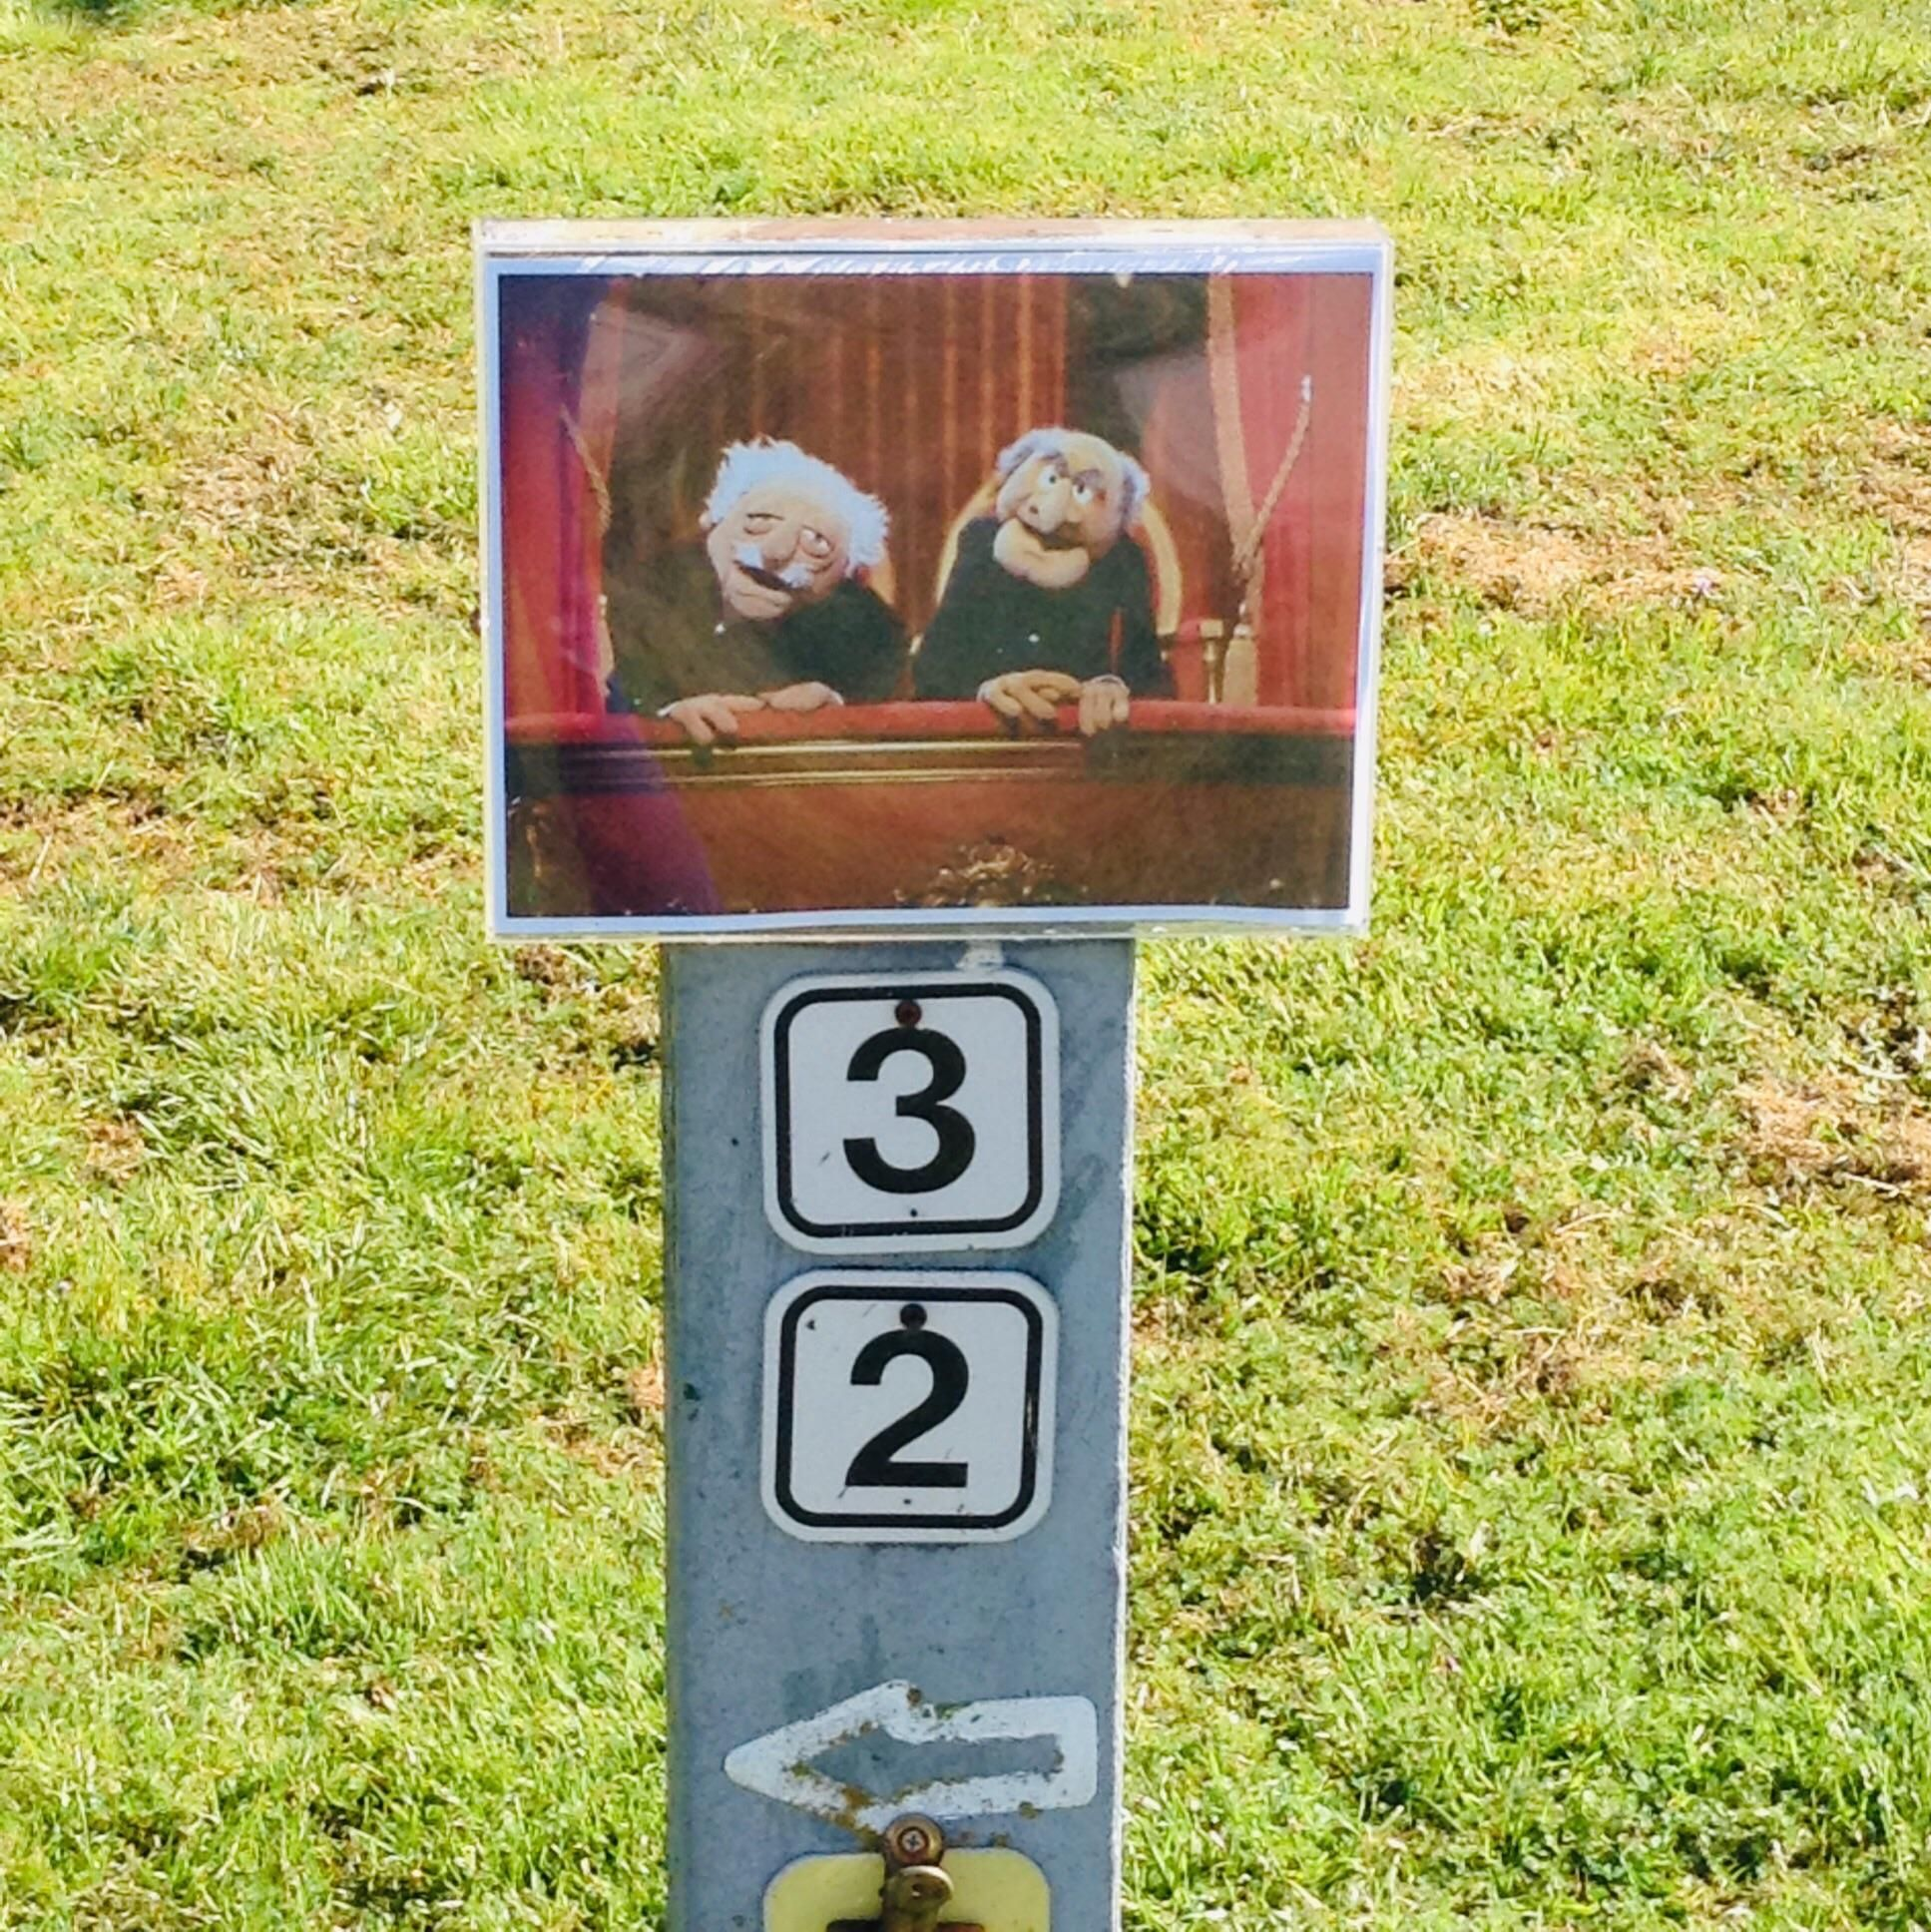 Two funny retired guys next to our family's campsite had this sign on their camping spot...